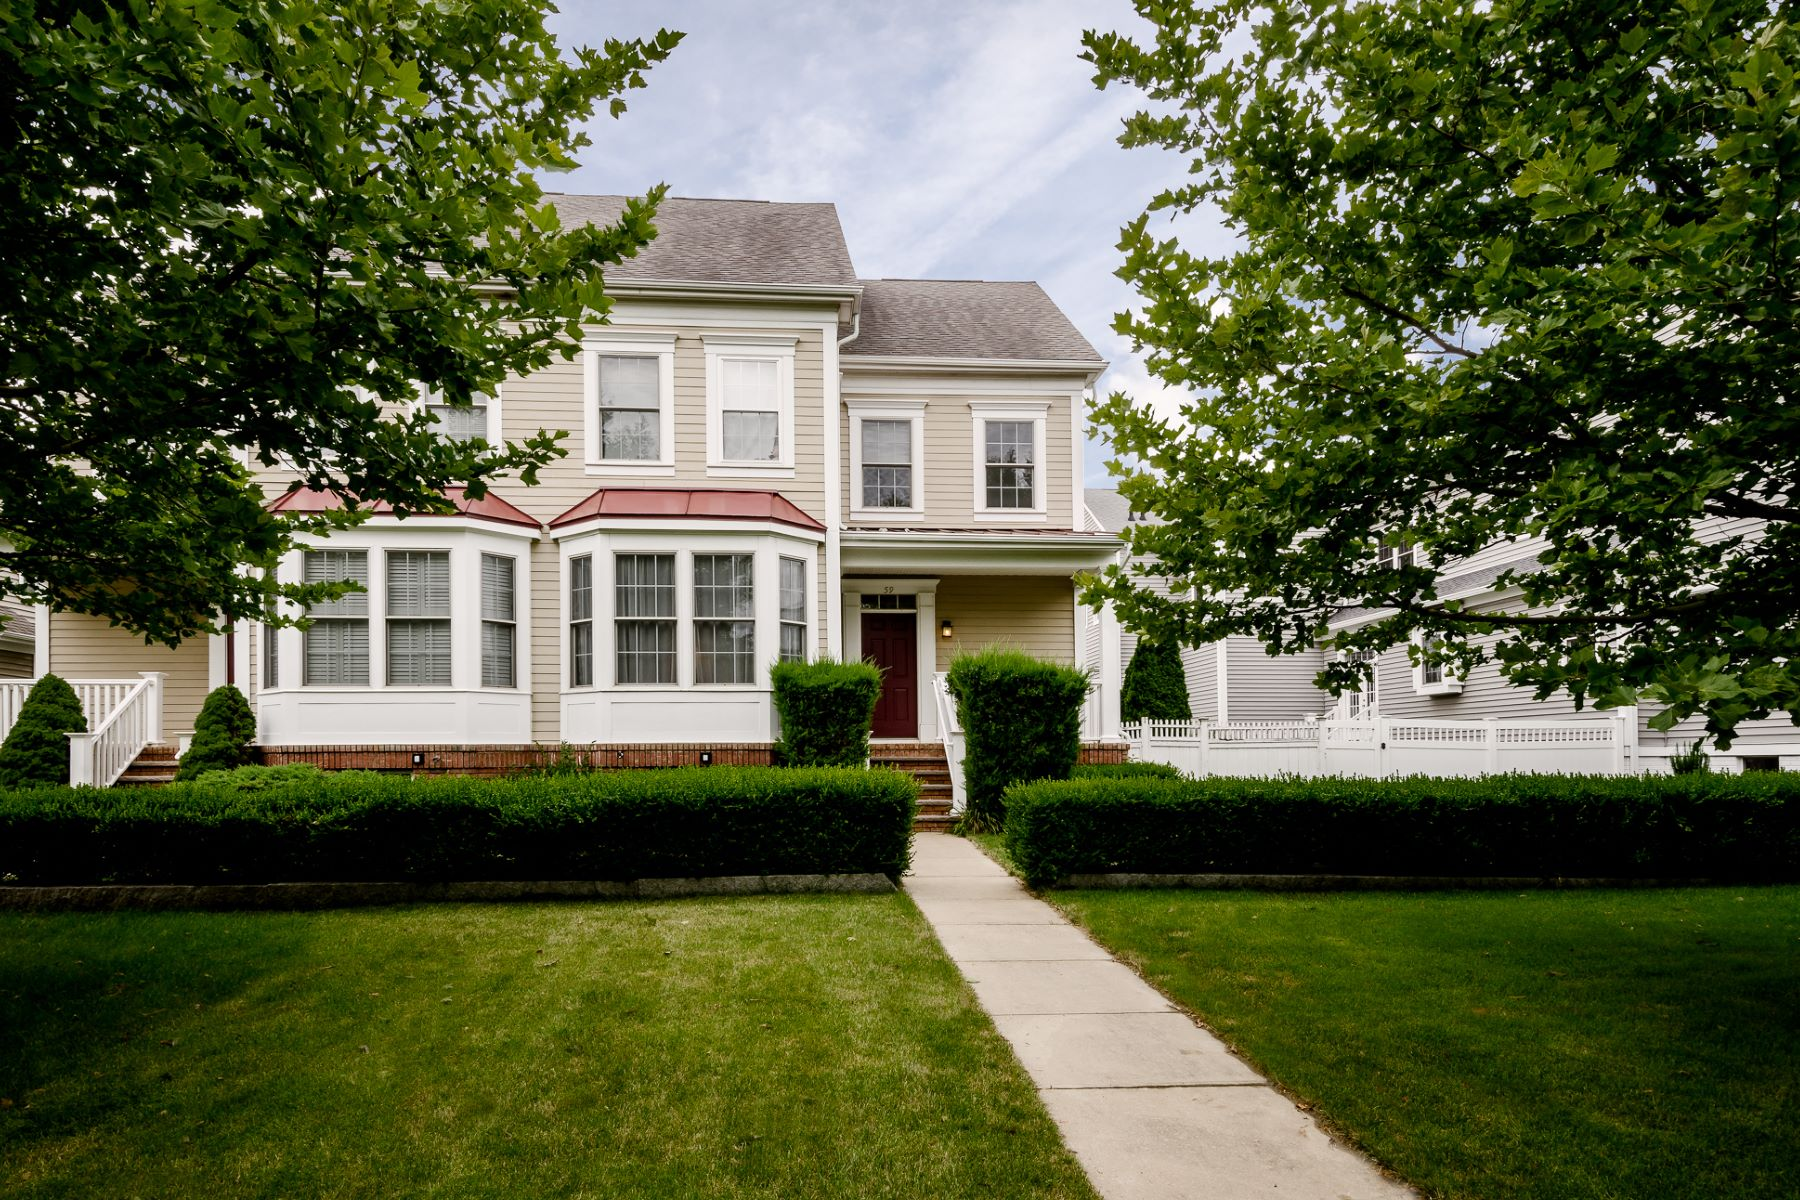 Townhouse for Sale at Open Plan and Pretty Outdoor Space in Robbinsville 59 Newtown Boulevard, Robbinsville, New Jersey 08691 United States